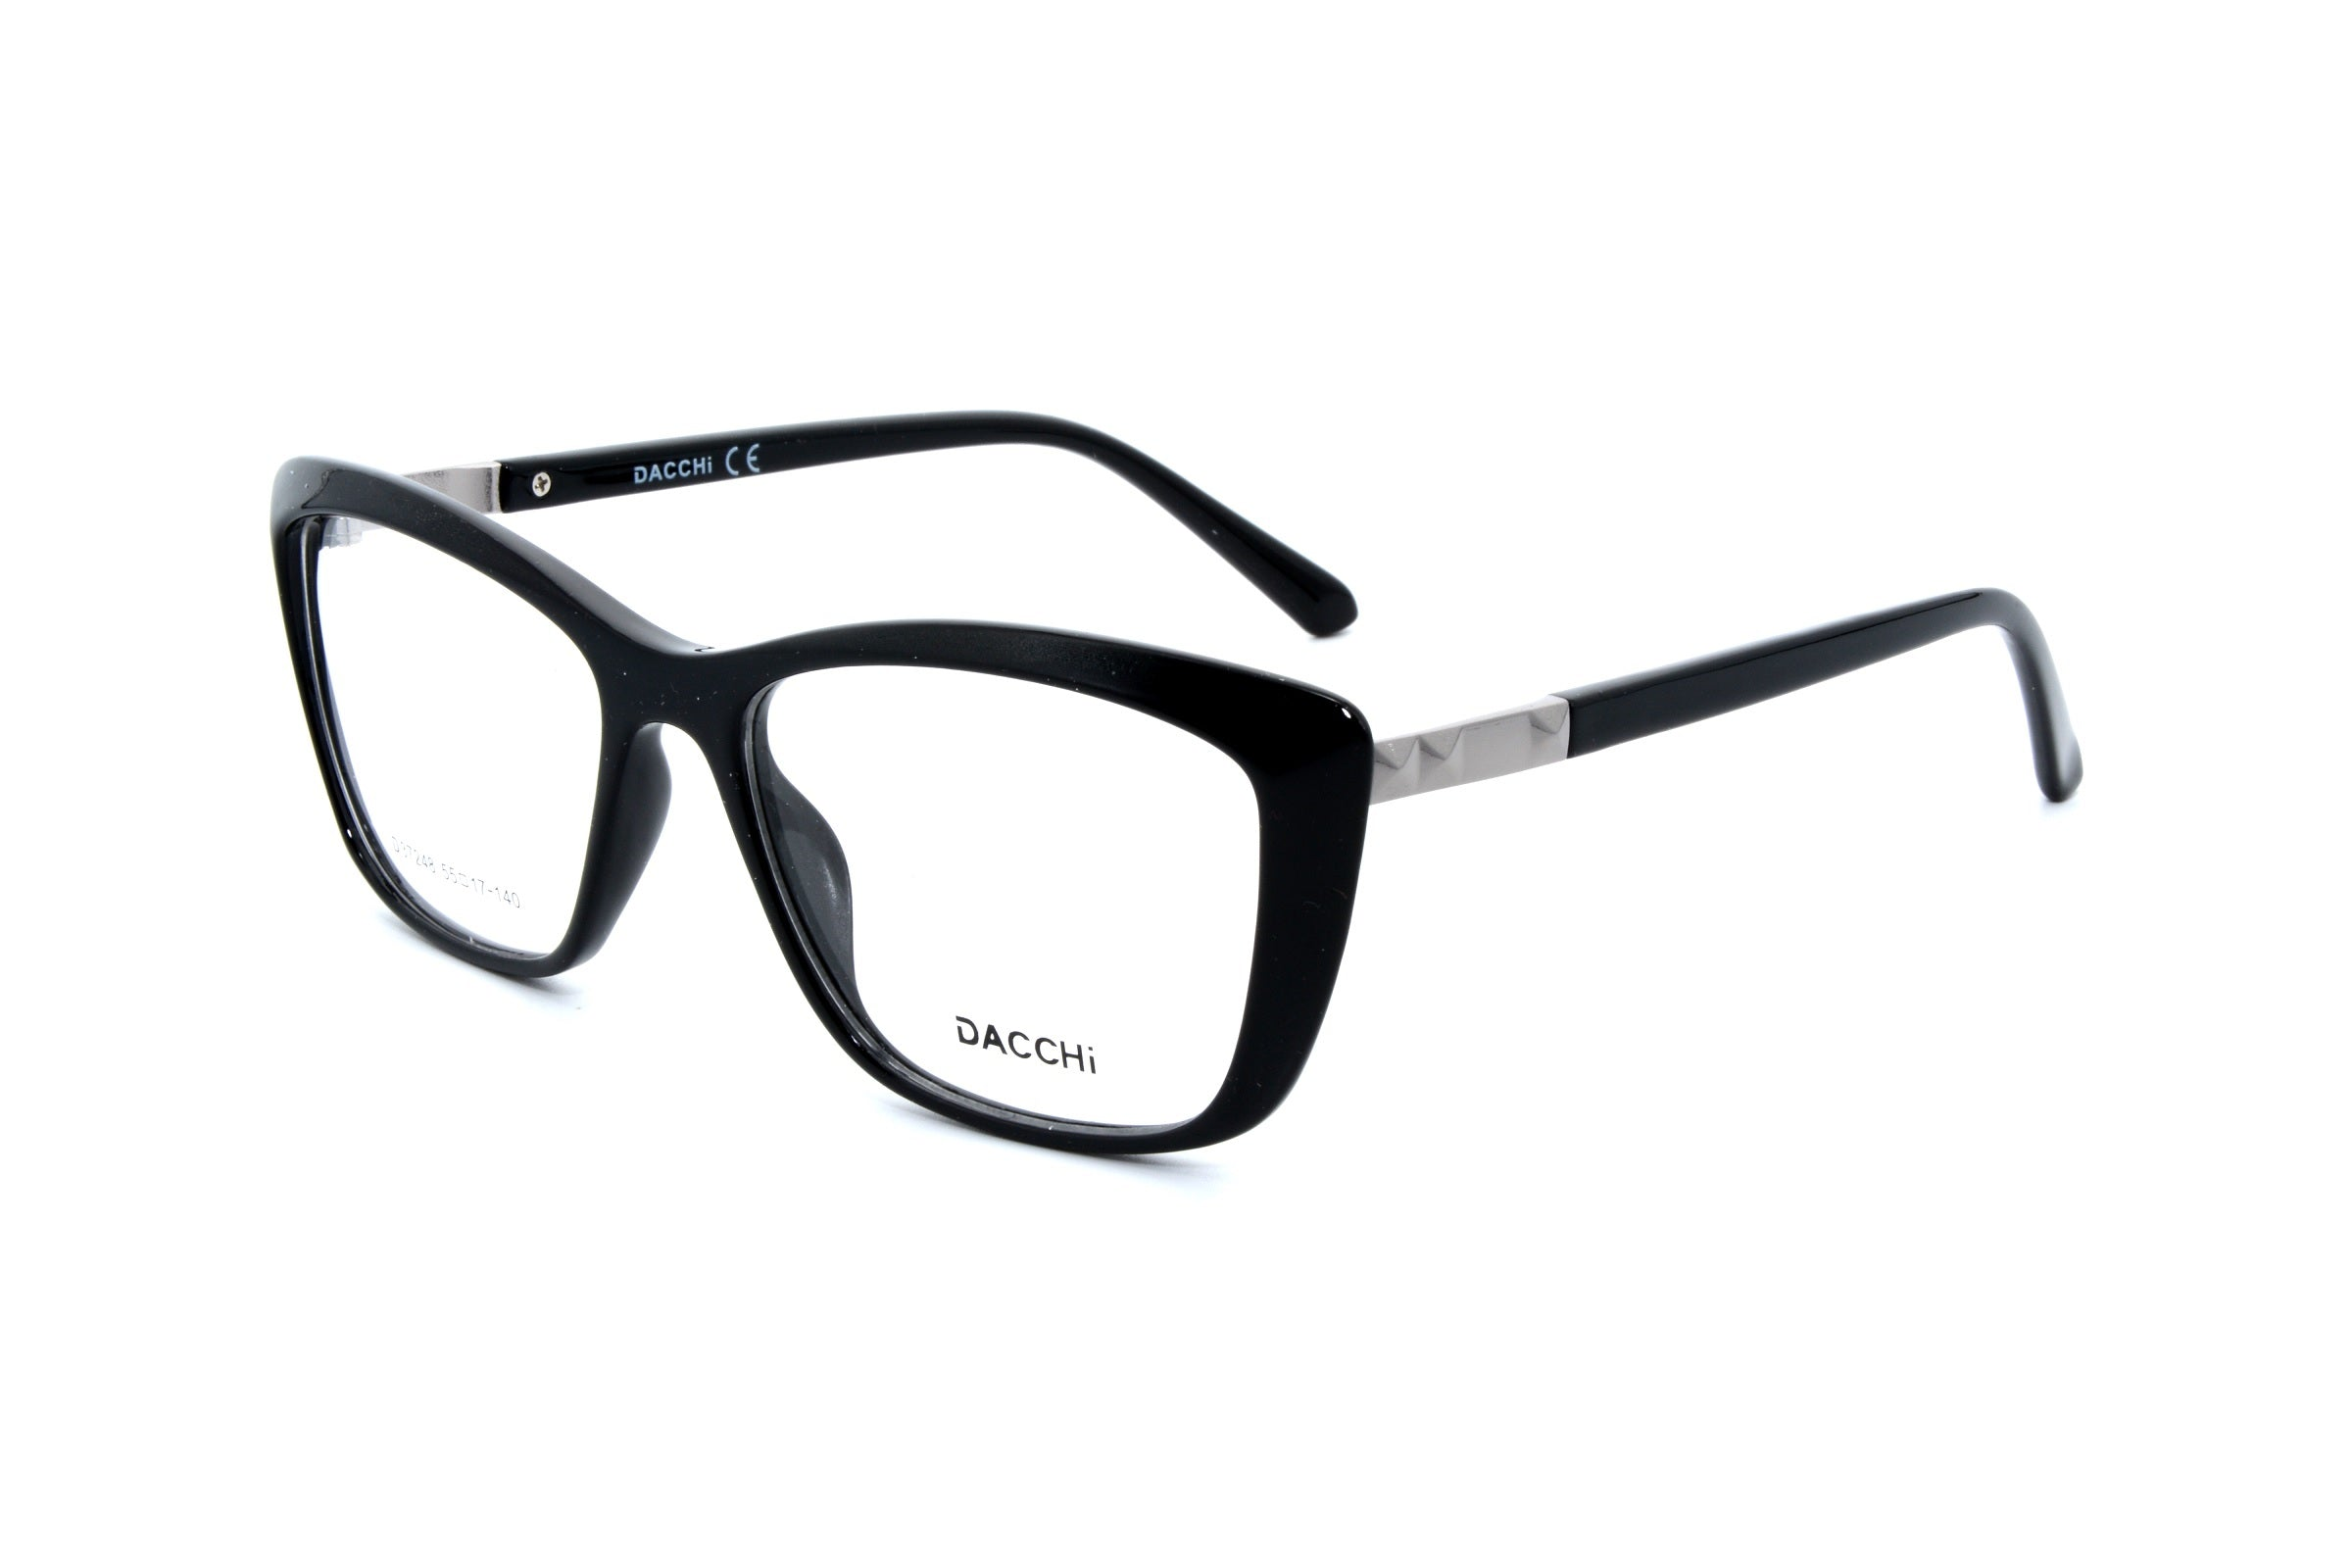 Dacchi eyewear 37248, C1 - Optics Trading